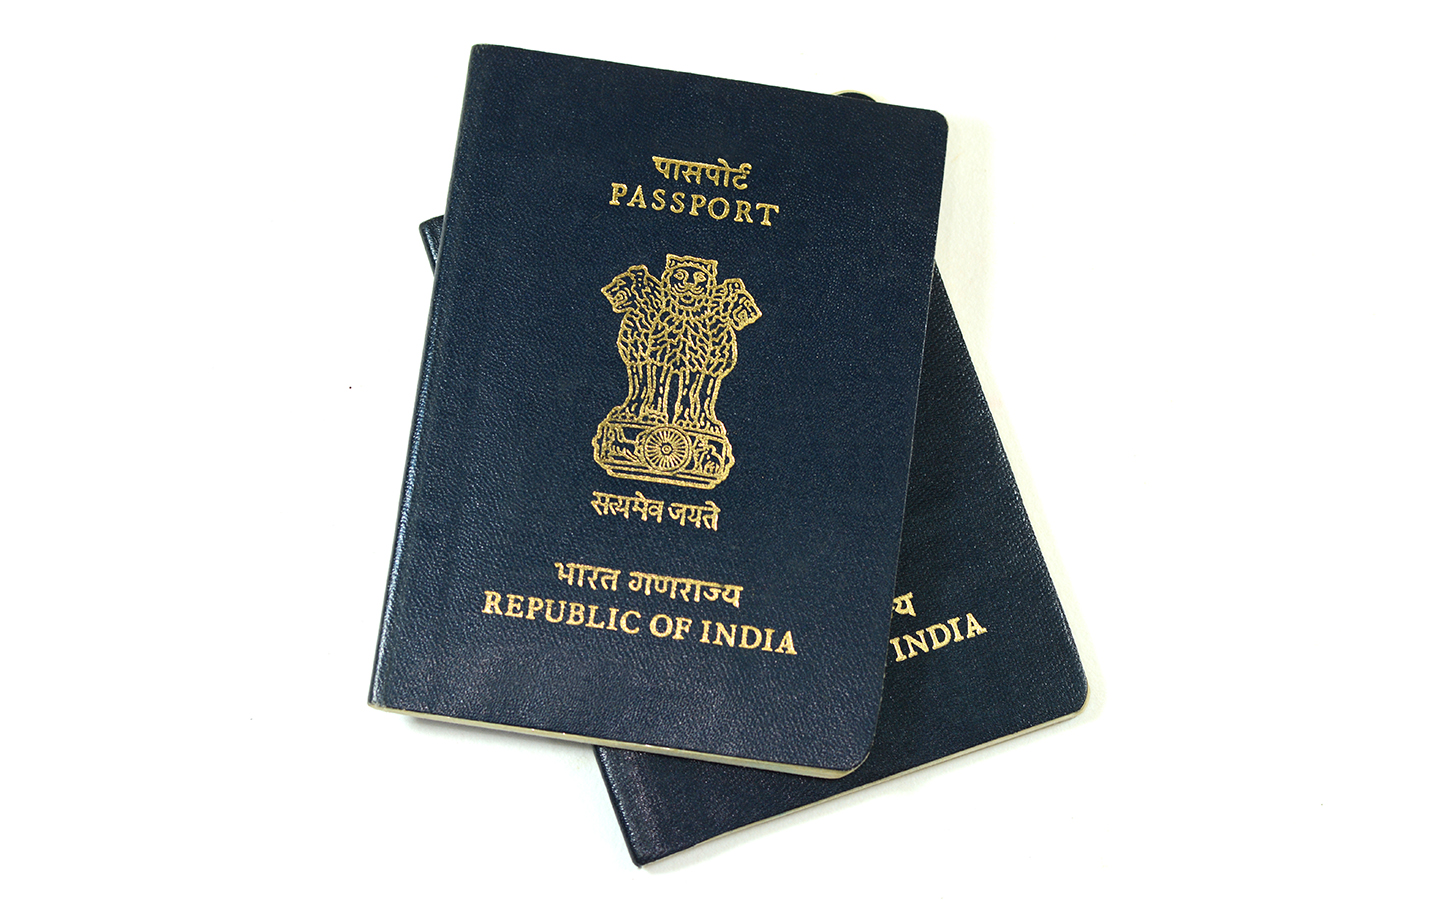 Indian passports on a white background